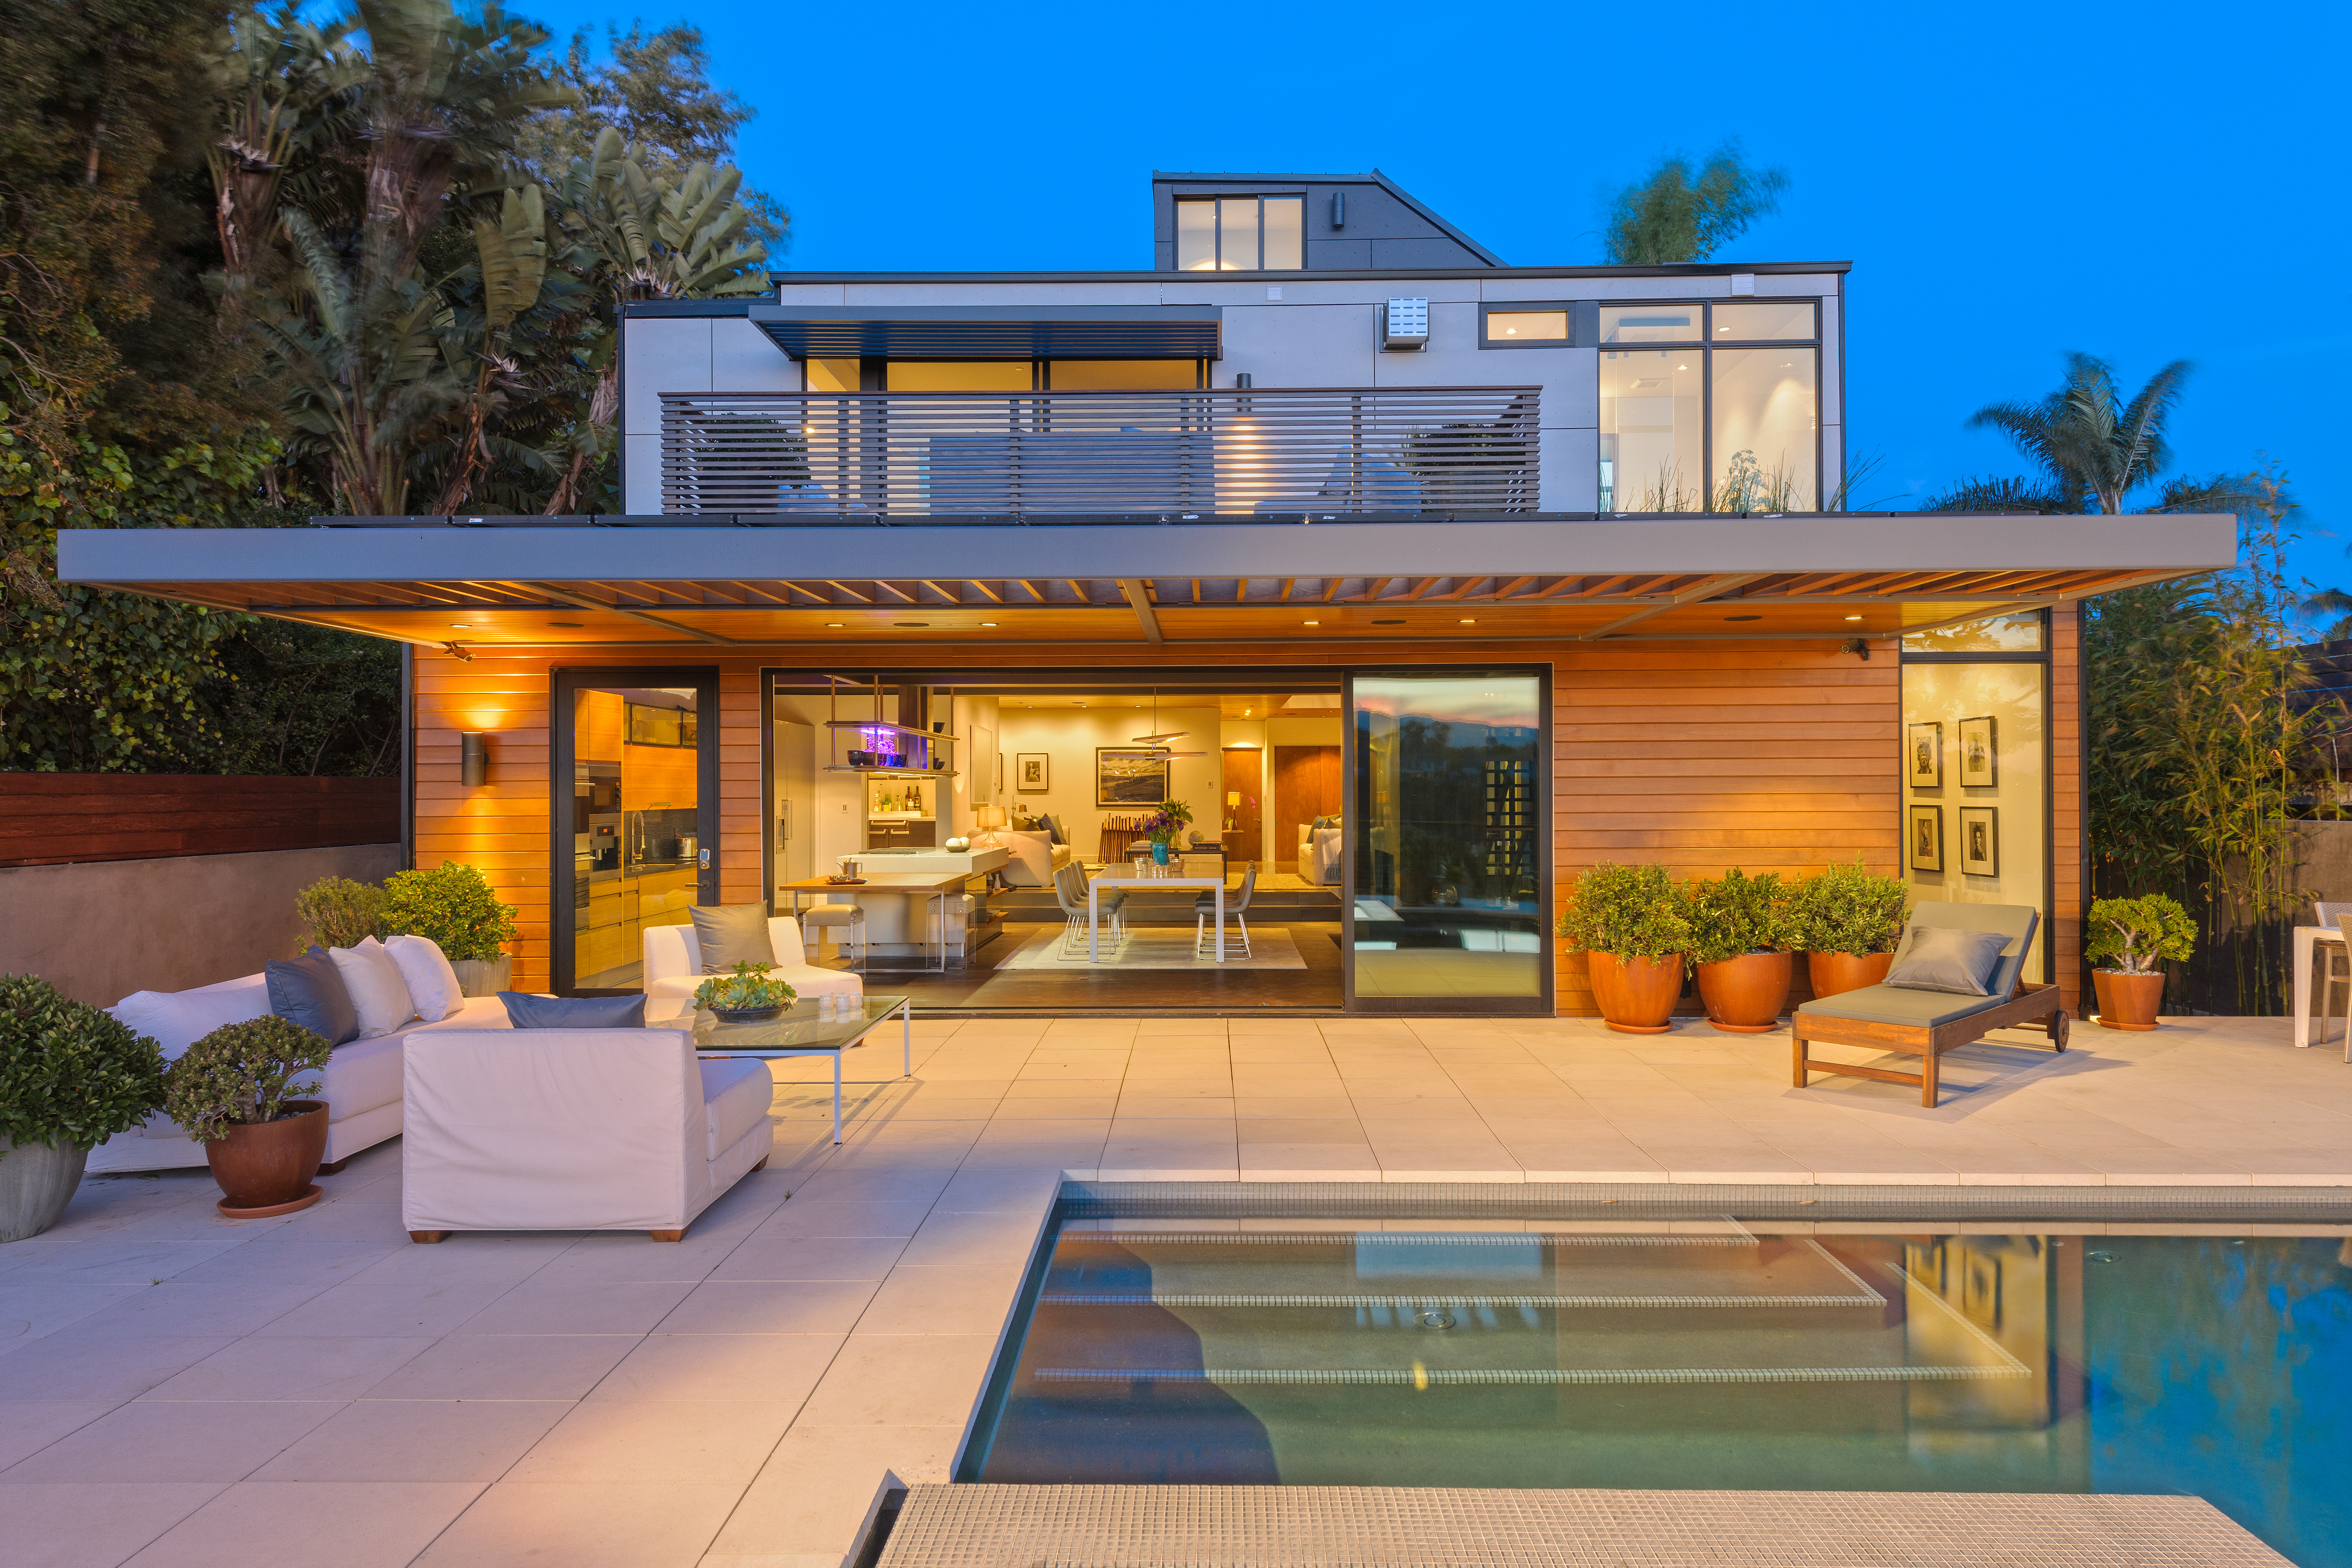 Todays Prefab Home Green Airy And EyeCatching Digsnet - Prefab home designs